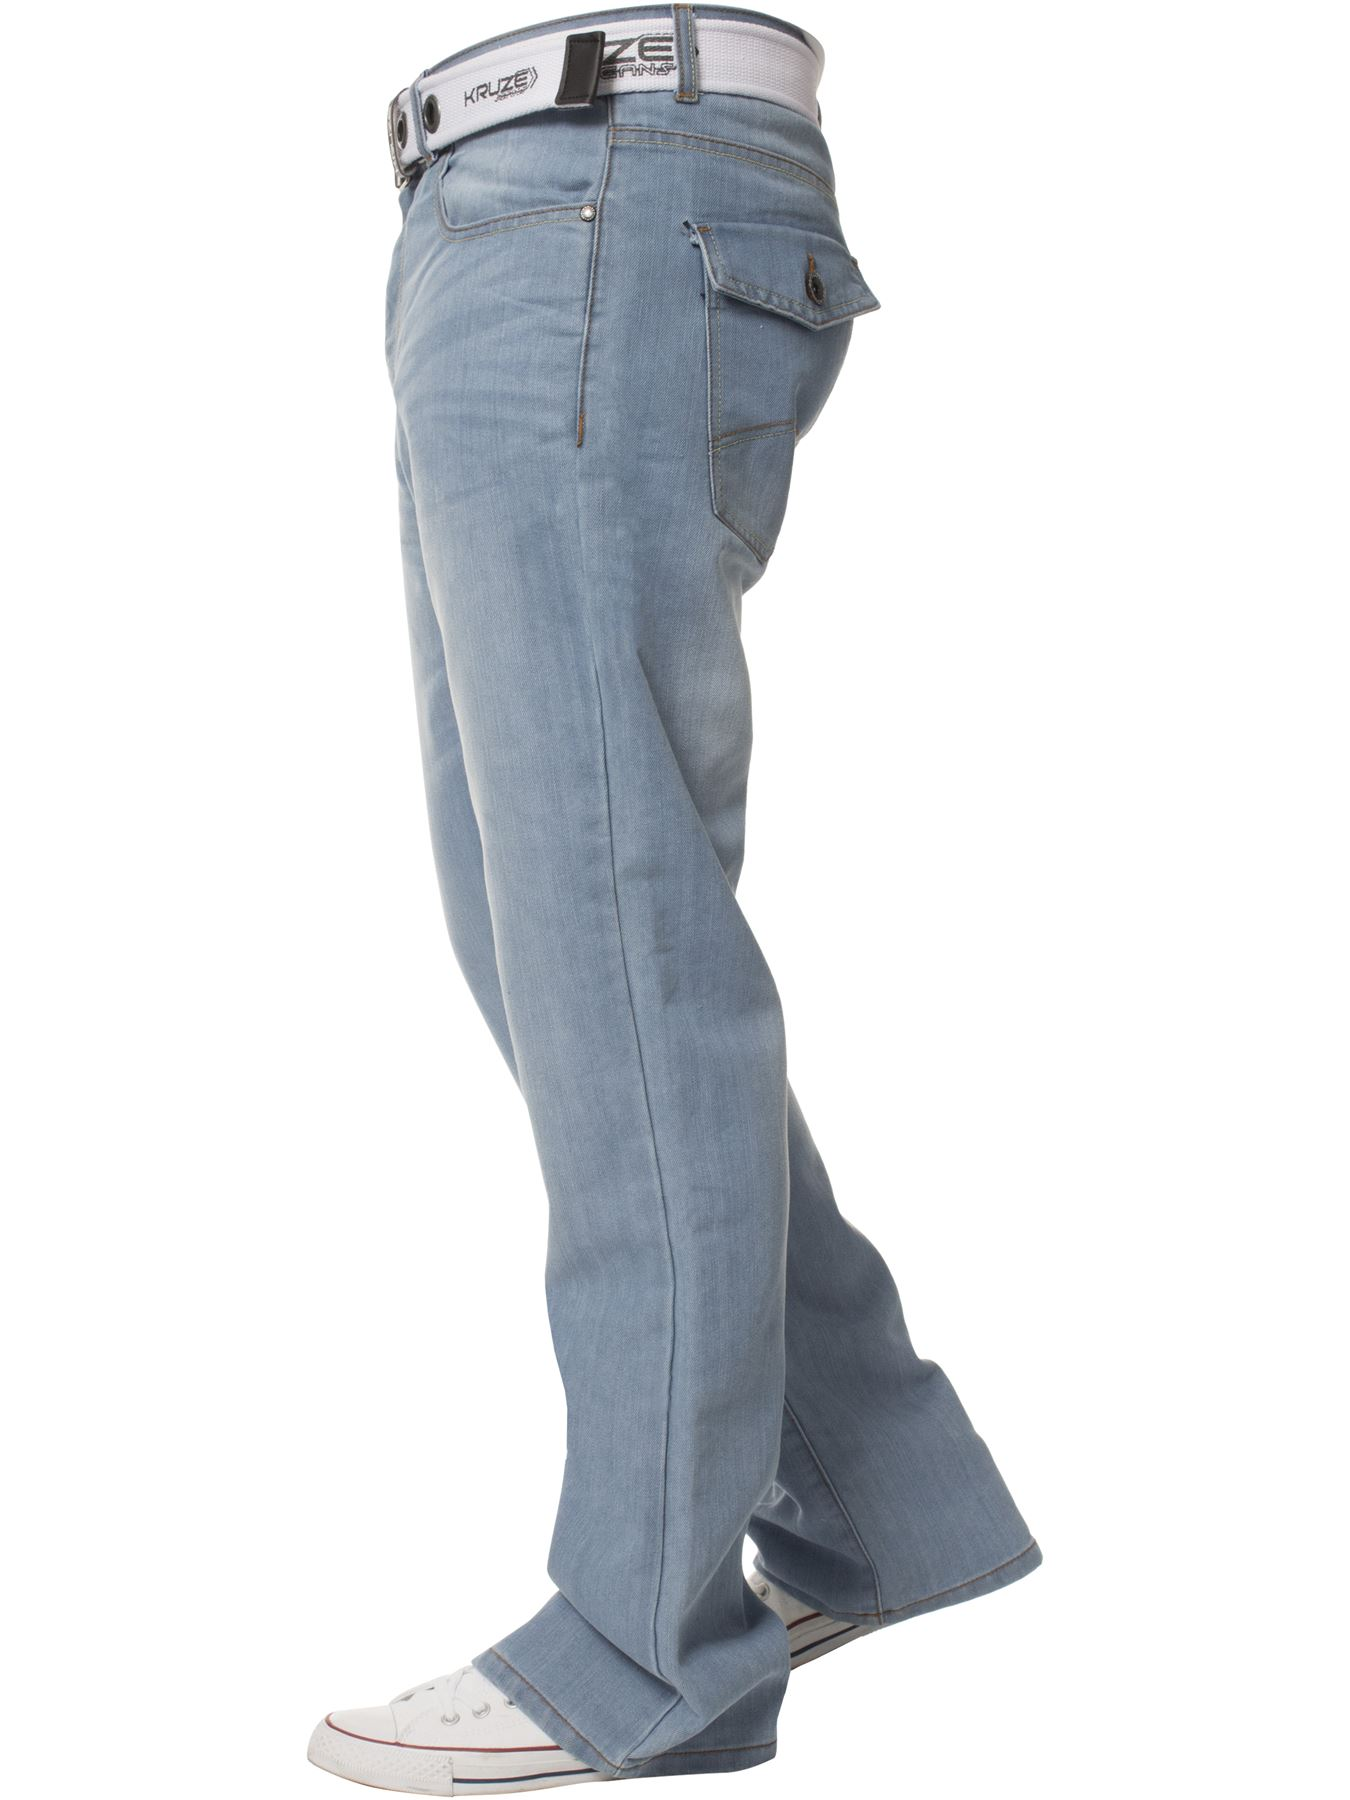 Kruze-Mens-Bootcut-Jeans-Flared-Wide-Leg-Denim-Pants-Big-Tall-King-All-Waists thumbnail 10